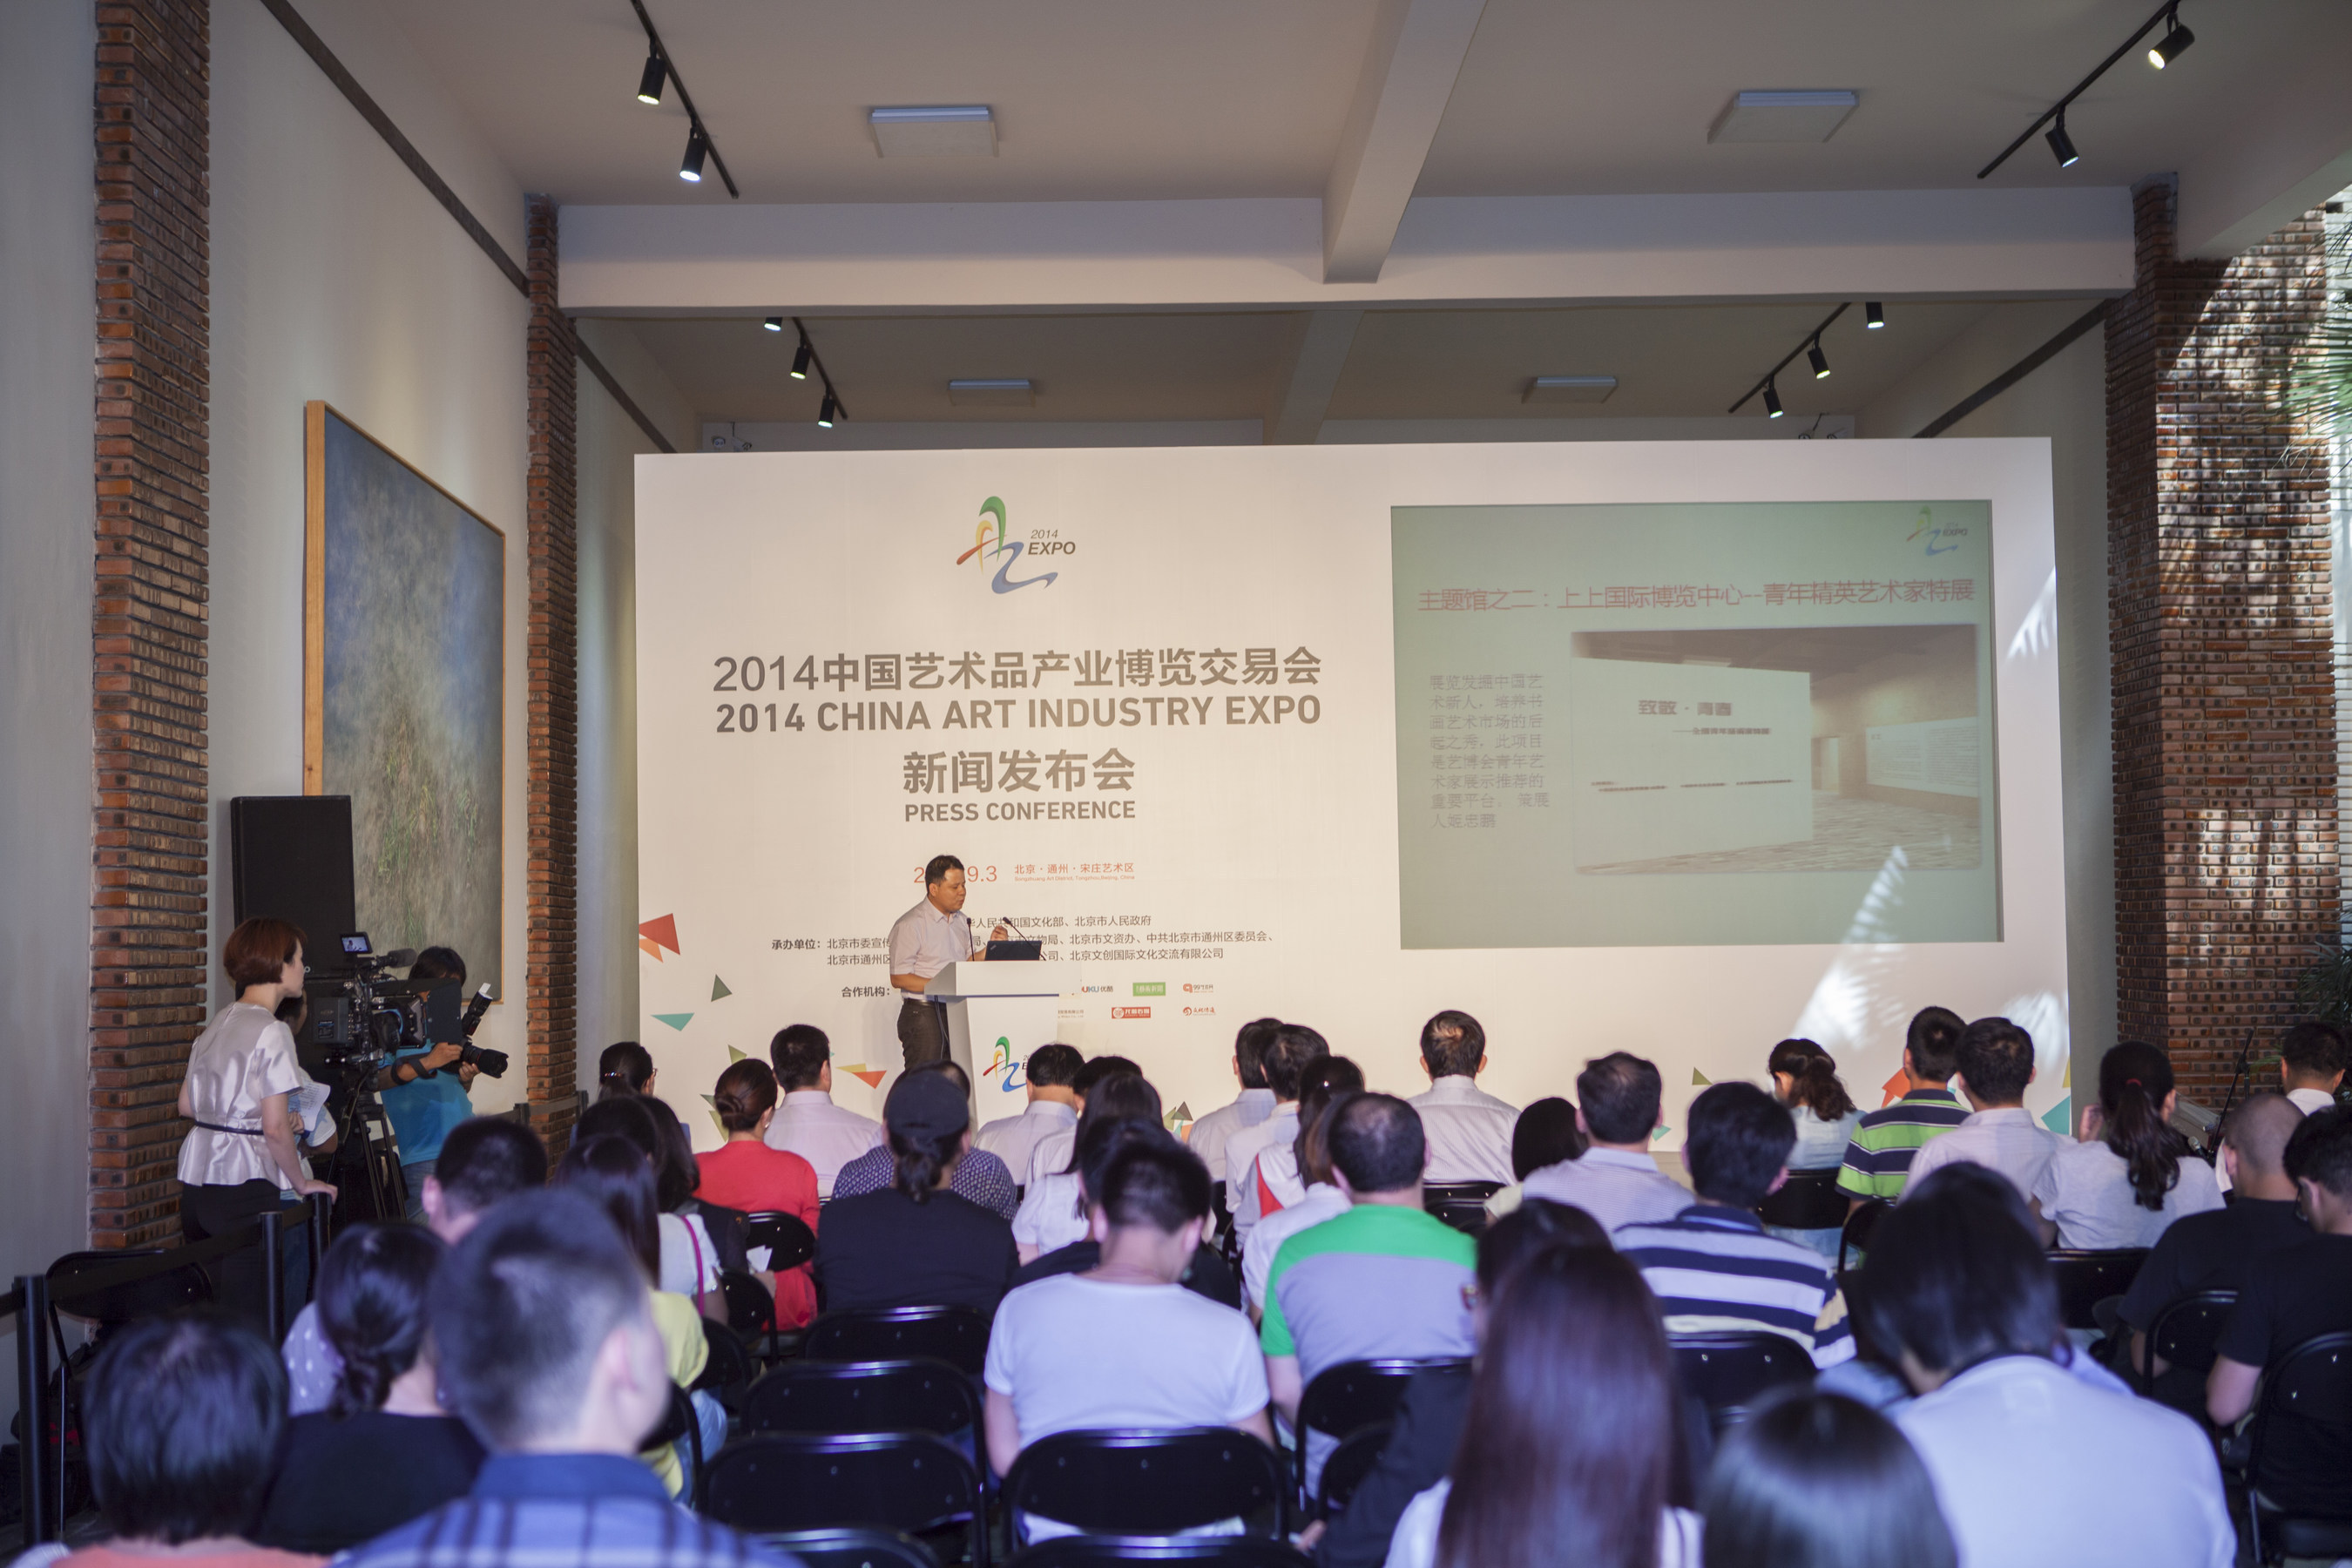 2014 China Art Industry Expo Launches in Songzhuang, Tongzhou